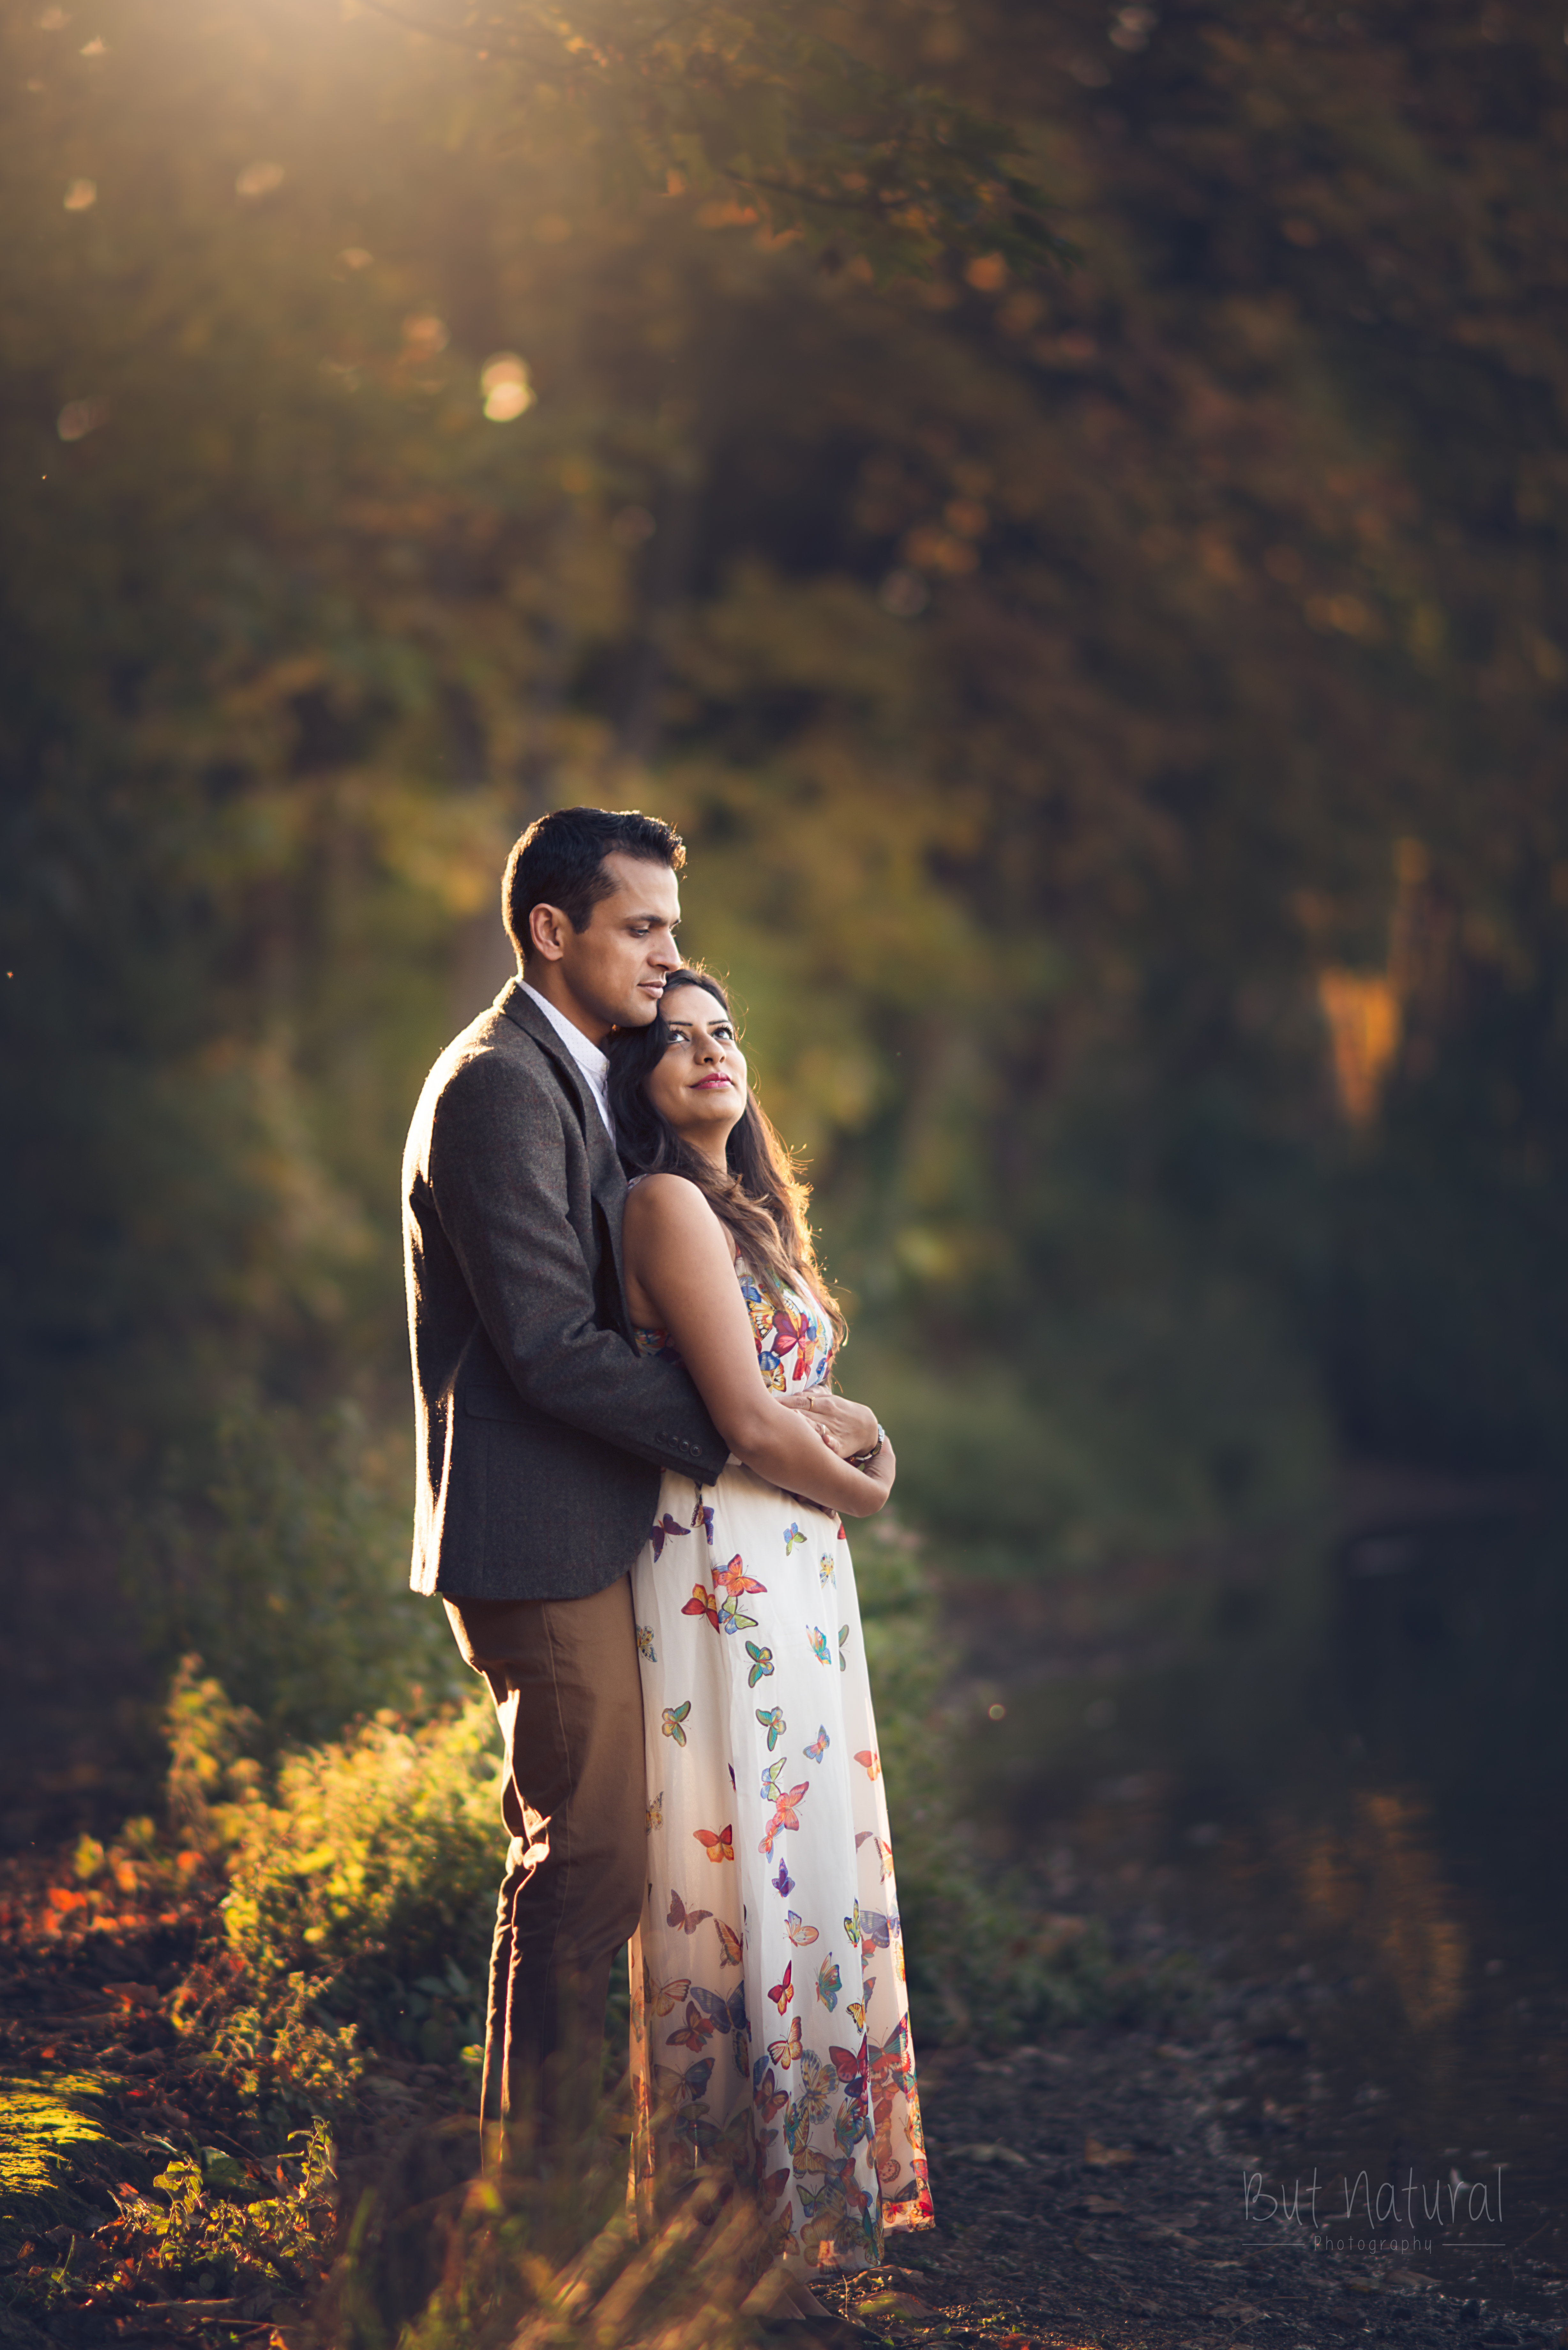 couple photoshoot natural light in london kent. UK But natural photography. Sujata